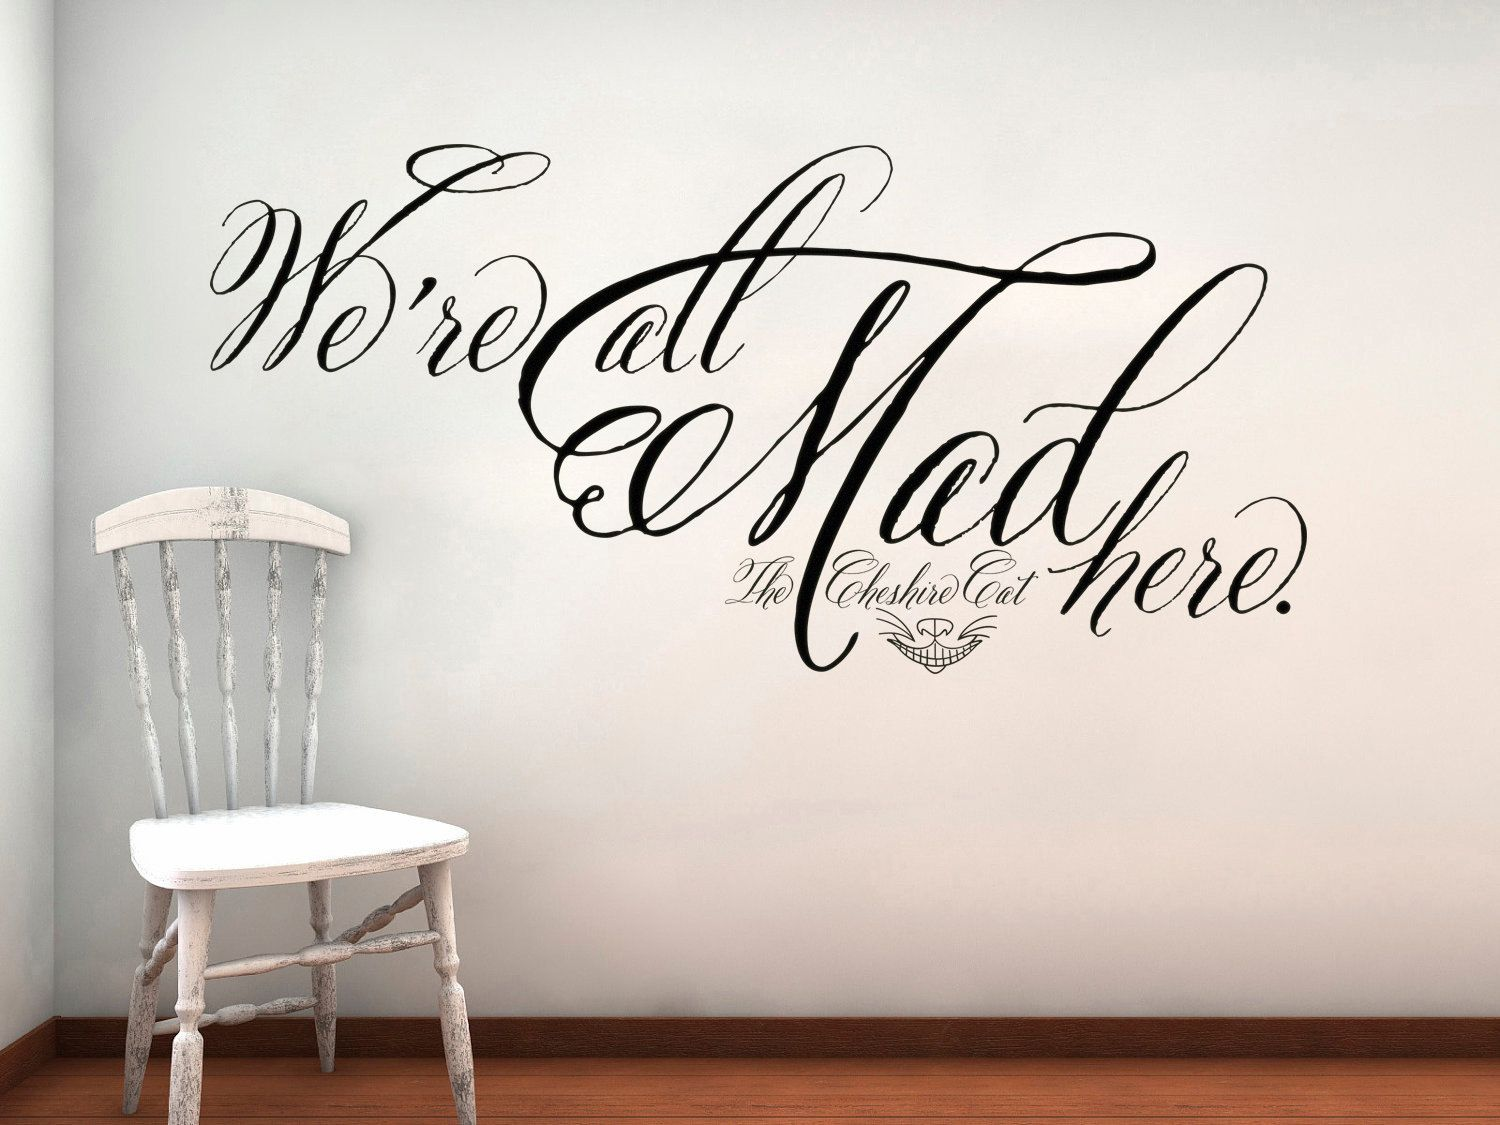 Alice in wonderland cheshire cat were all mad here wall decal alice in wonderland cheshire cat were all mad here wall decal lettering sticker amipublicfo Images